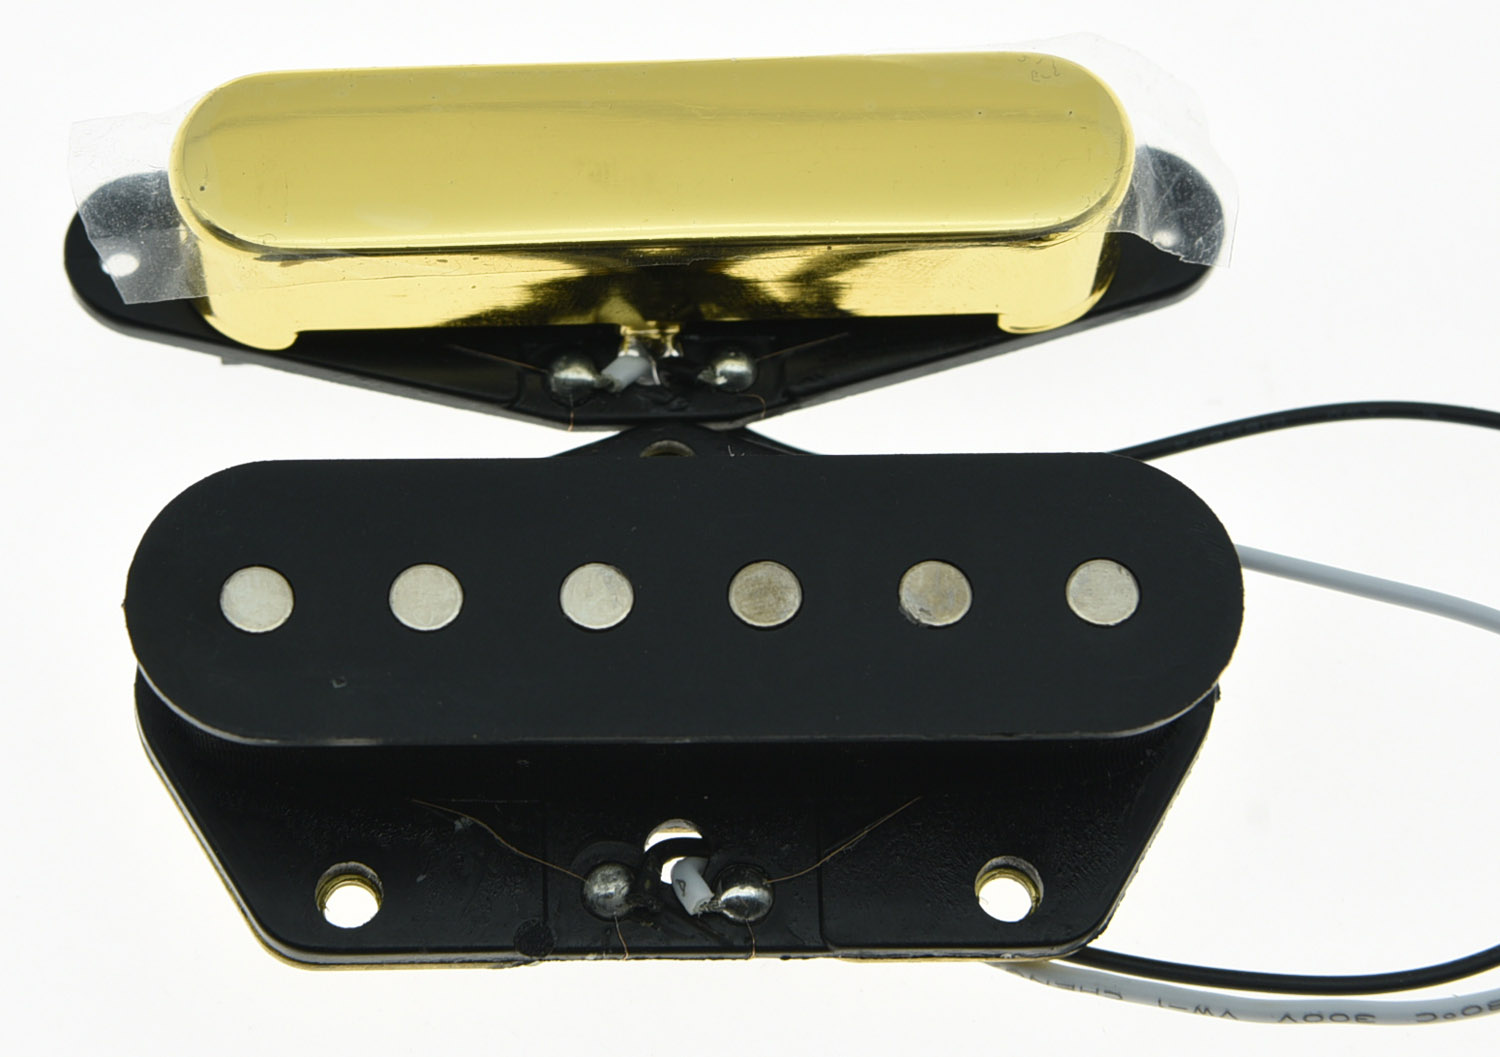 KAISH 2x Neck  & Bridge Tele Pickup Set Guitar Pickups for Telecaster Gold блаженный августин о граде божием книга 1